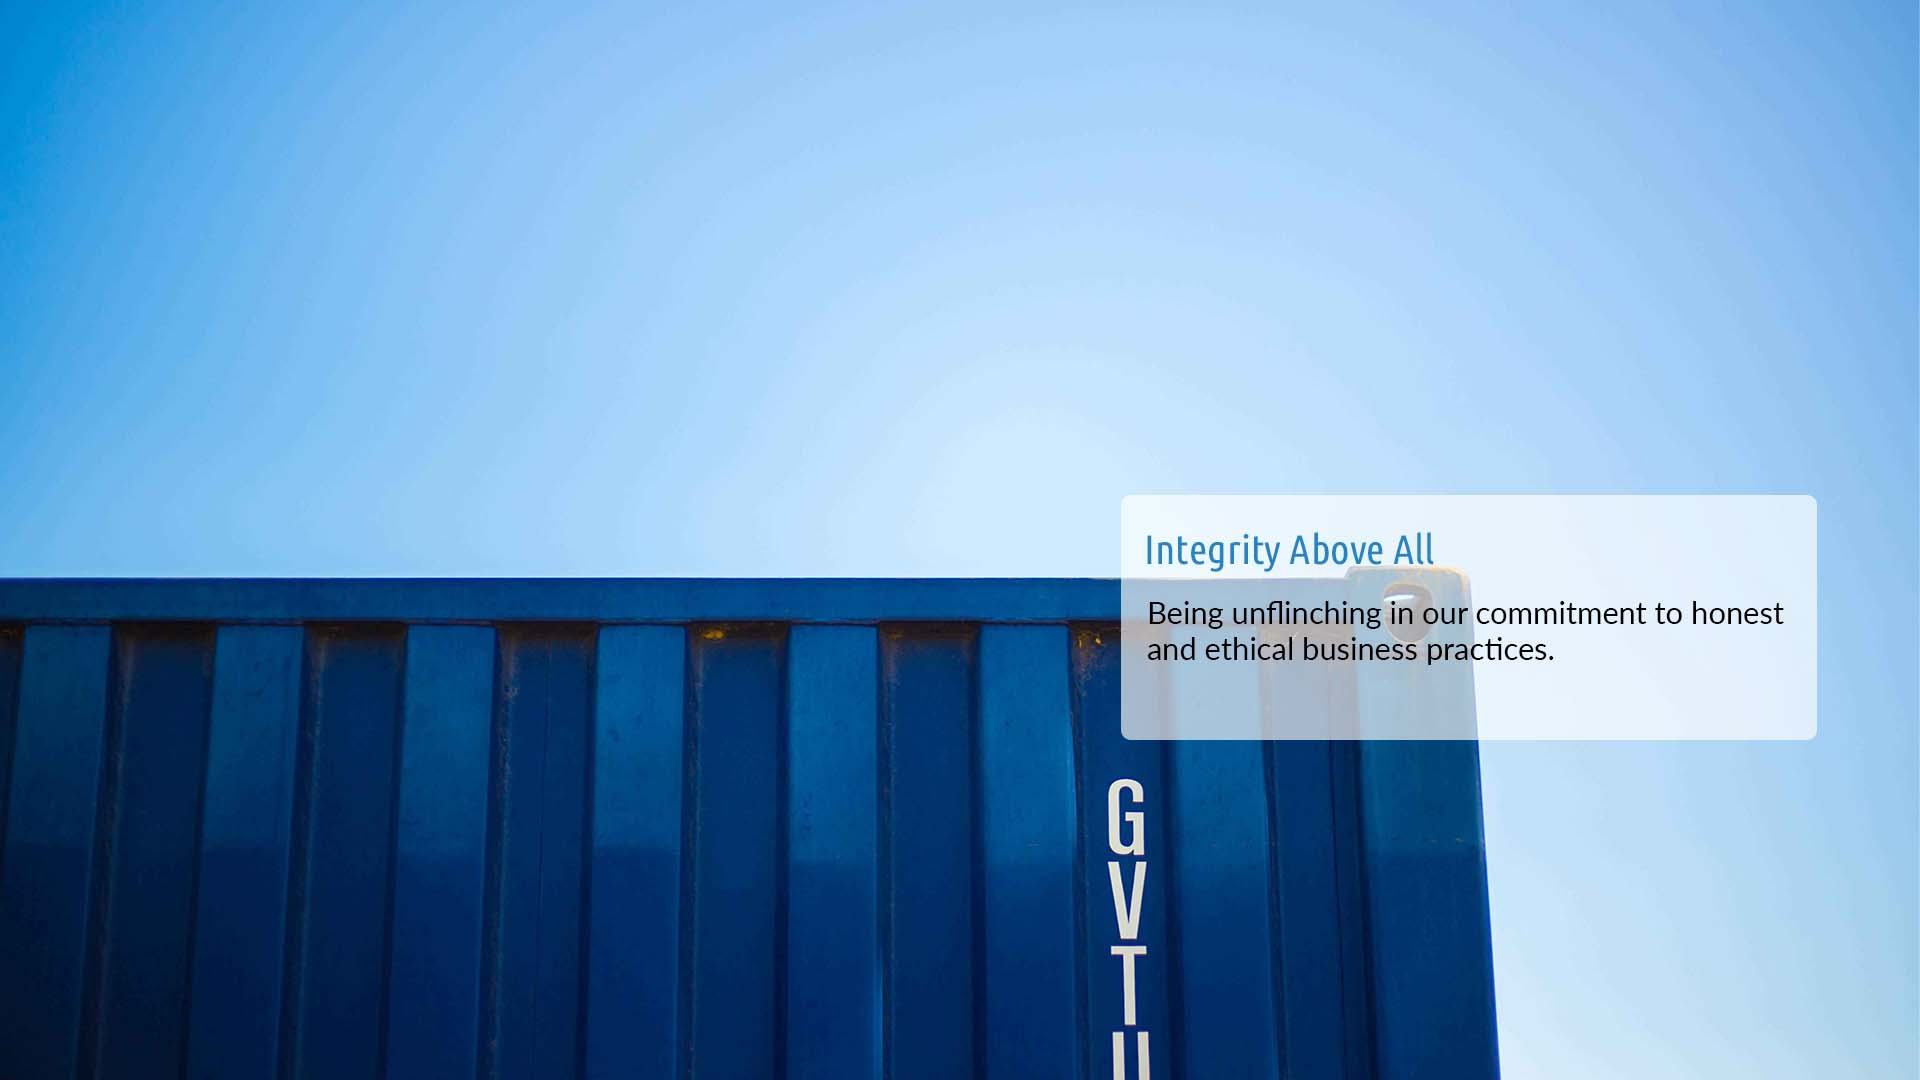 Integrity Above All